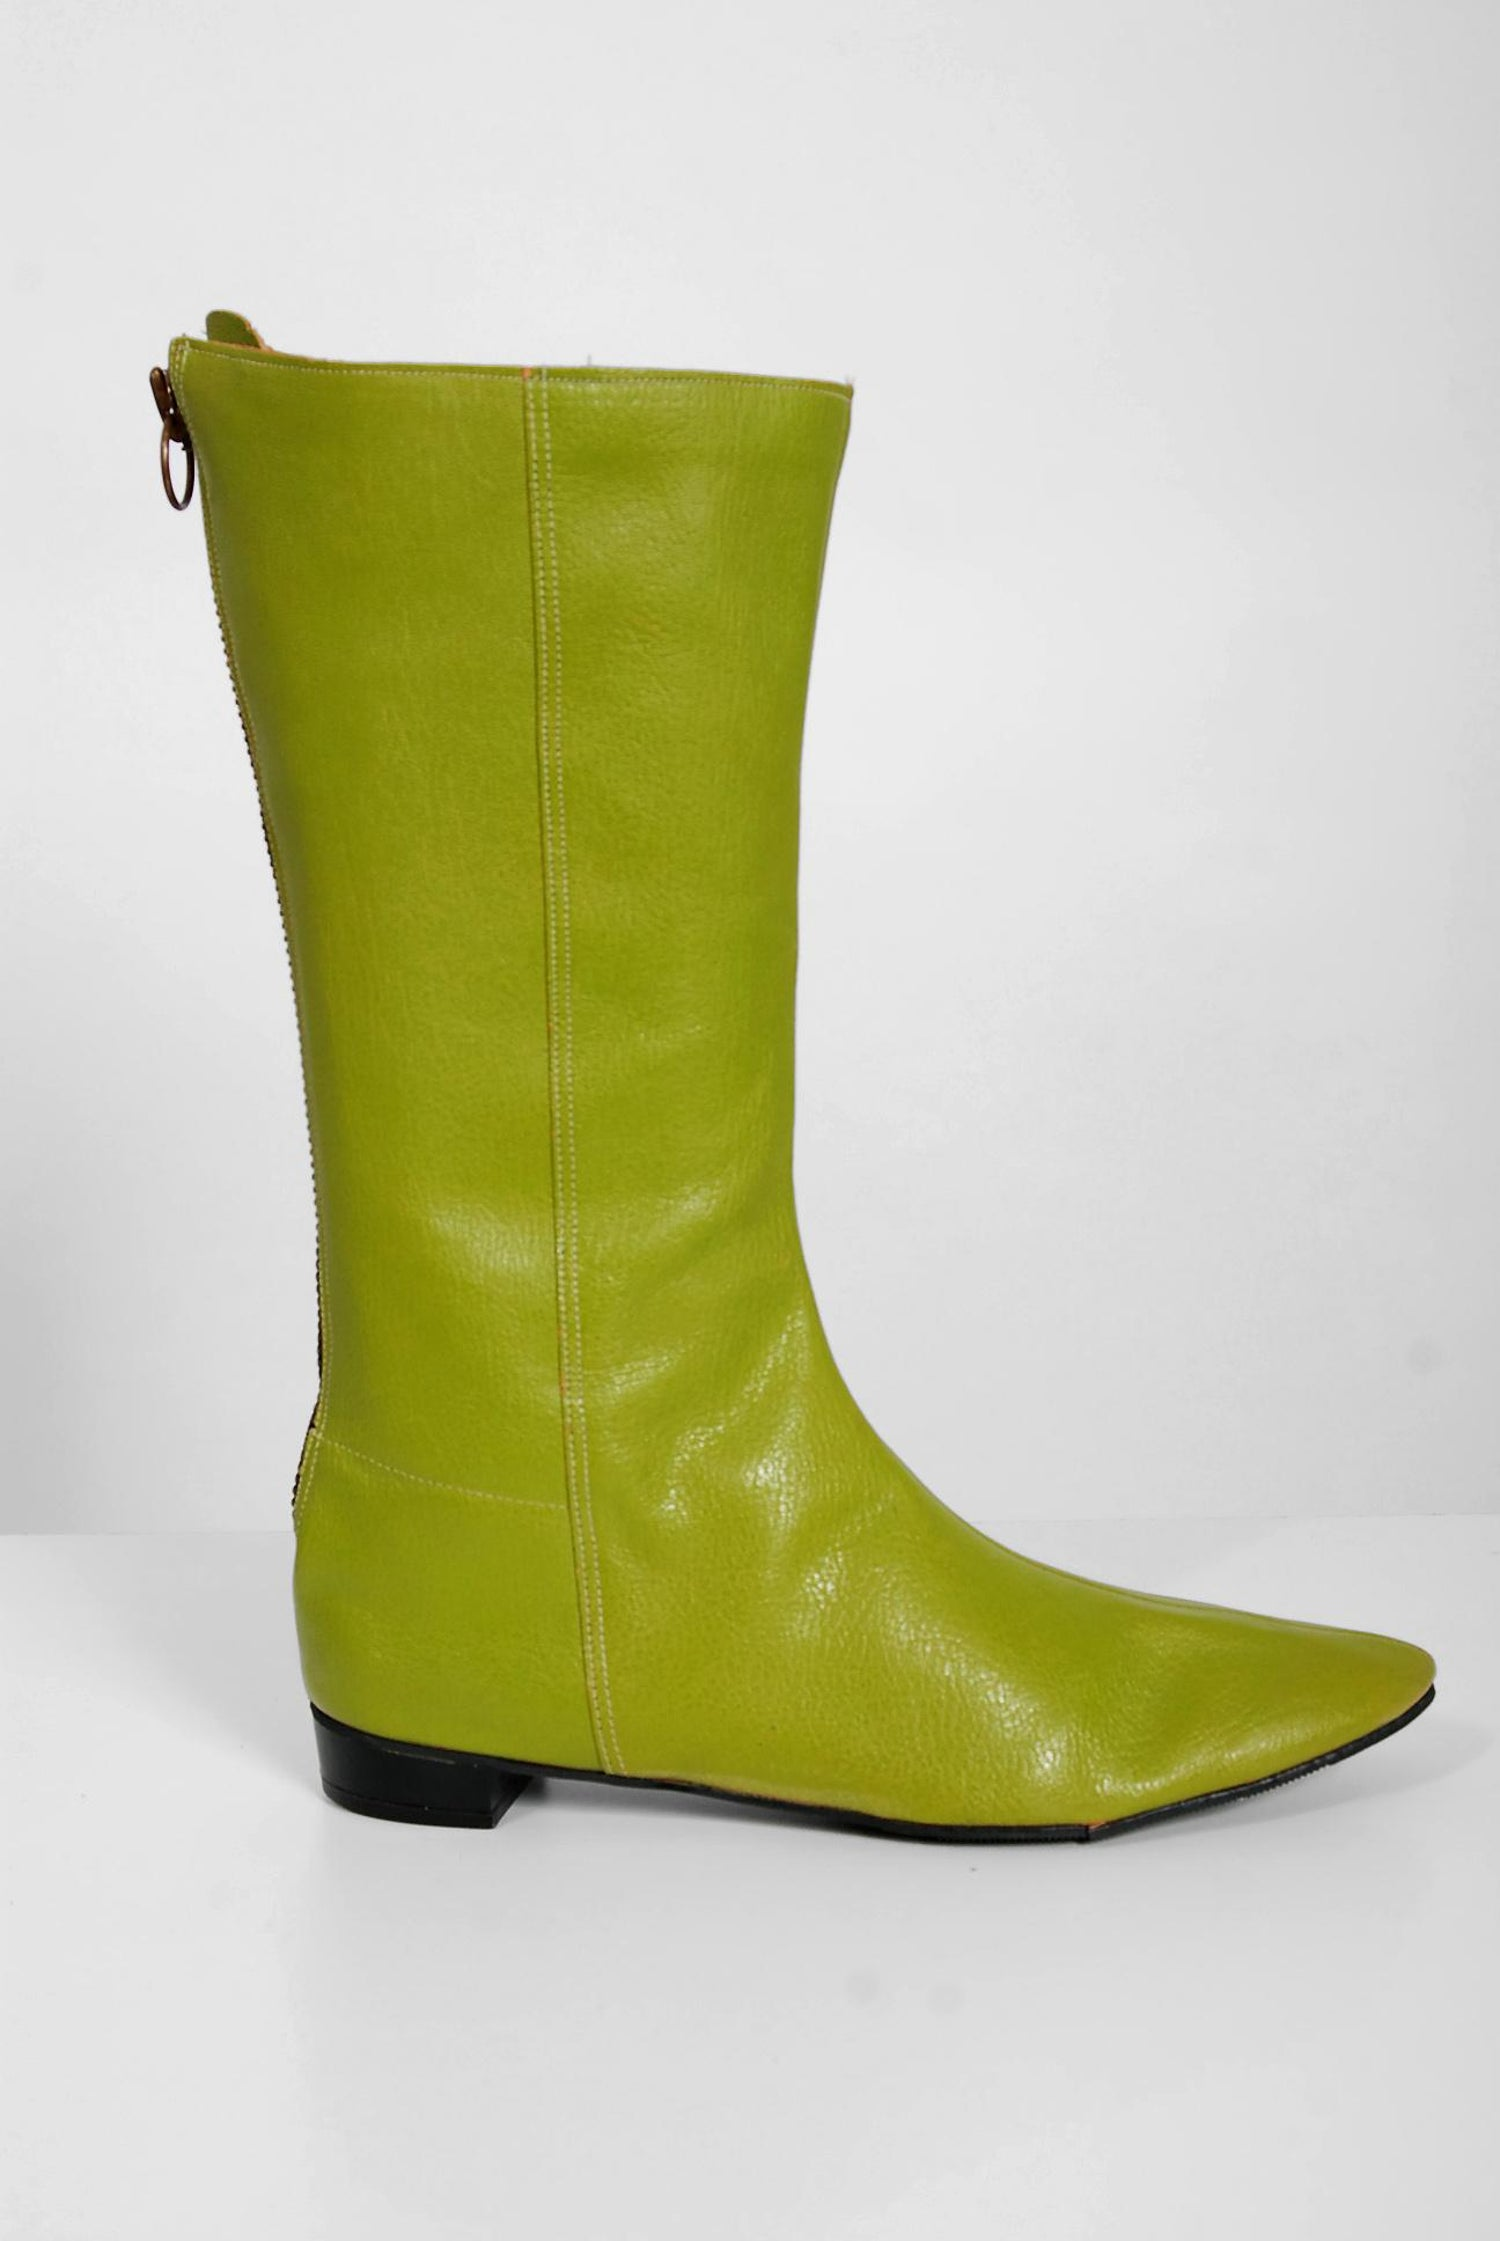 8256427c3e9 1960 s Olive Green Leather Mod Zipper Back Flat Mid-Calf Designer Boots For  Sale at 1stdibs